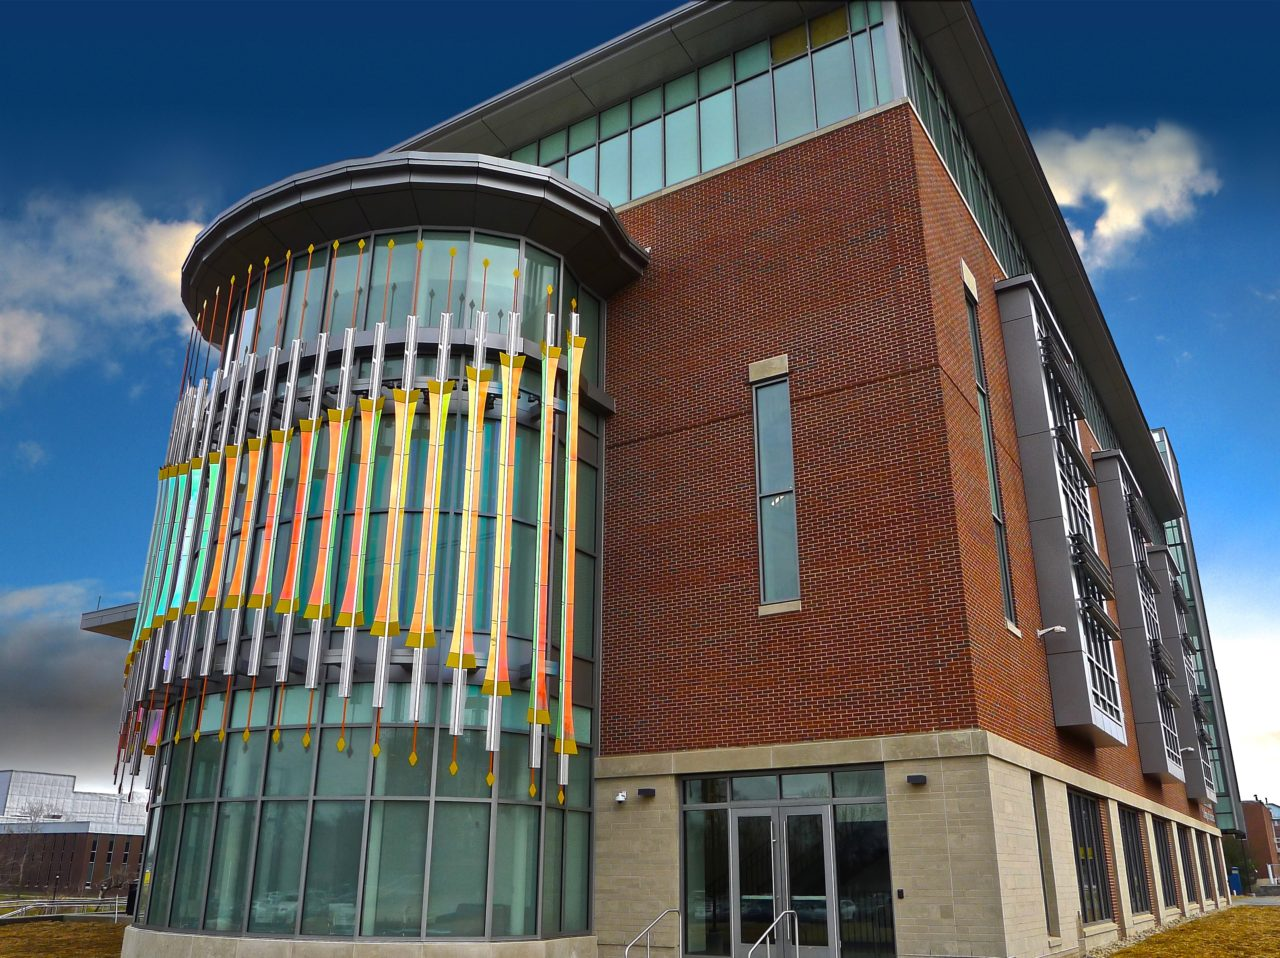 Rohrer College of Business at Rowan University exterior view of Threshold laminated dichroic glass and perforated stainless steel sculpture abstractly refers to gate imagery. / image 3